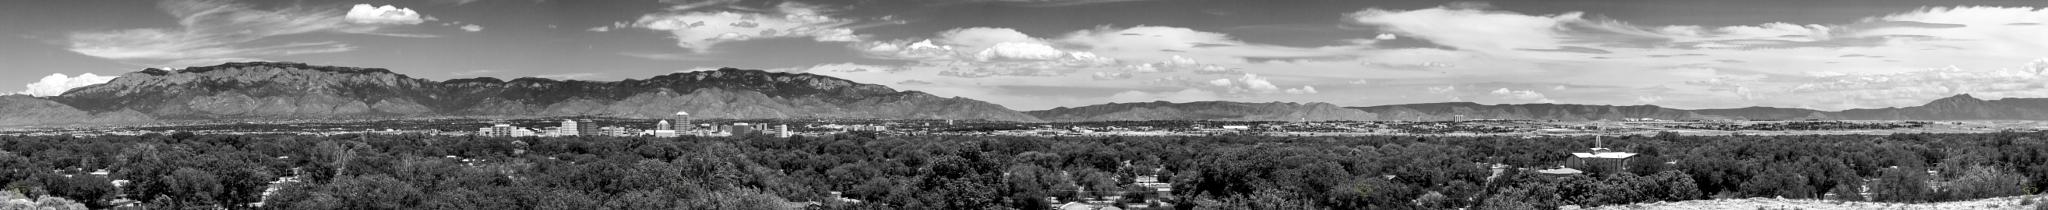 ABQ Pano by Donald Durante Jr